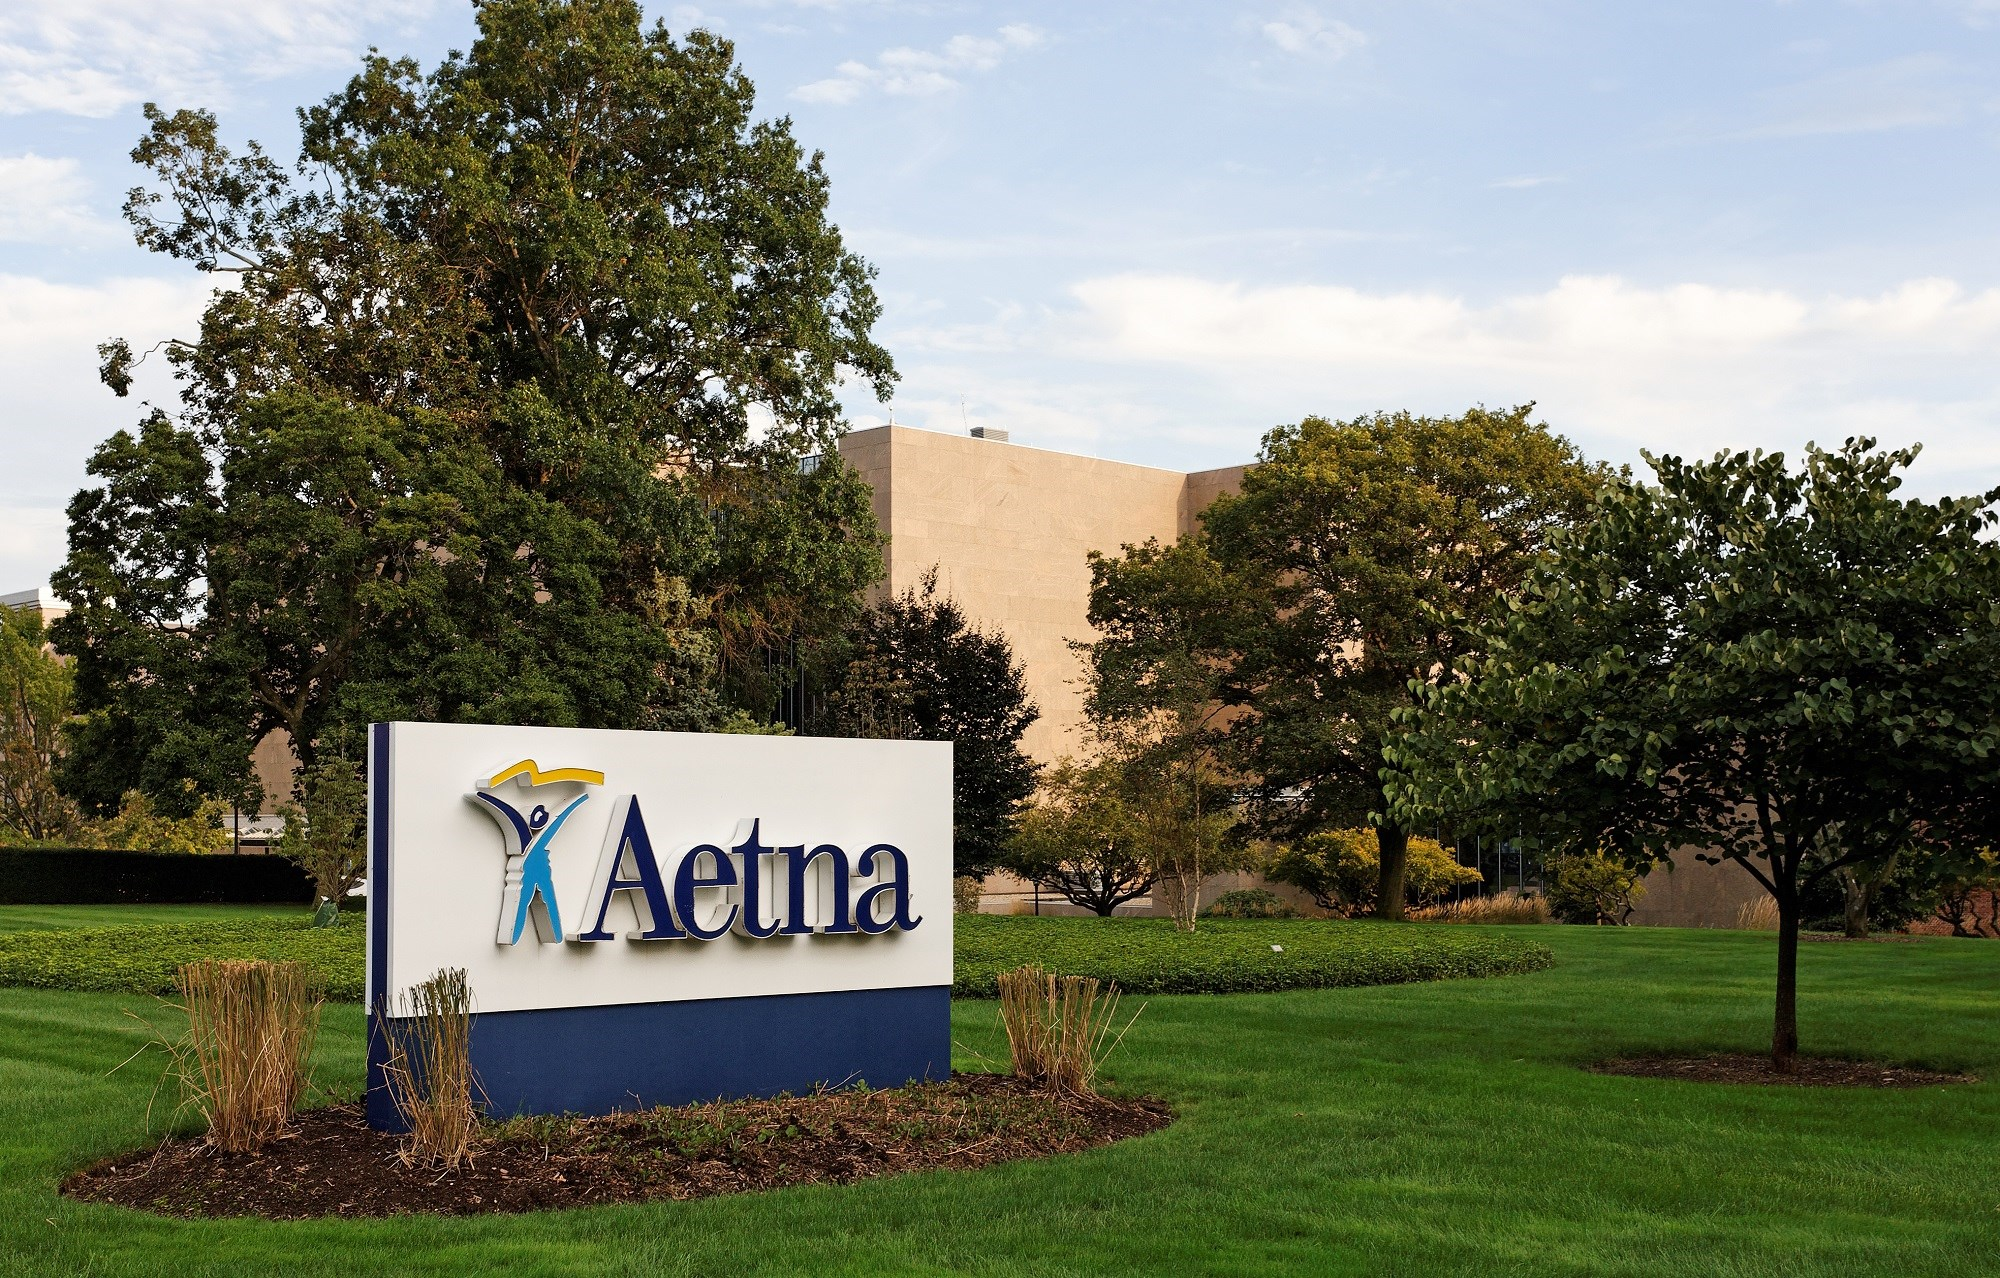 A $69 billion merger between health insurer Aetna and pharmacy manager CVS Health has been approved.